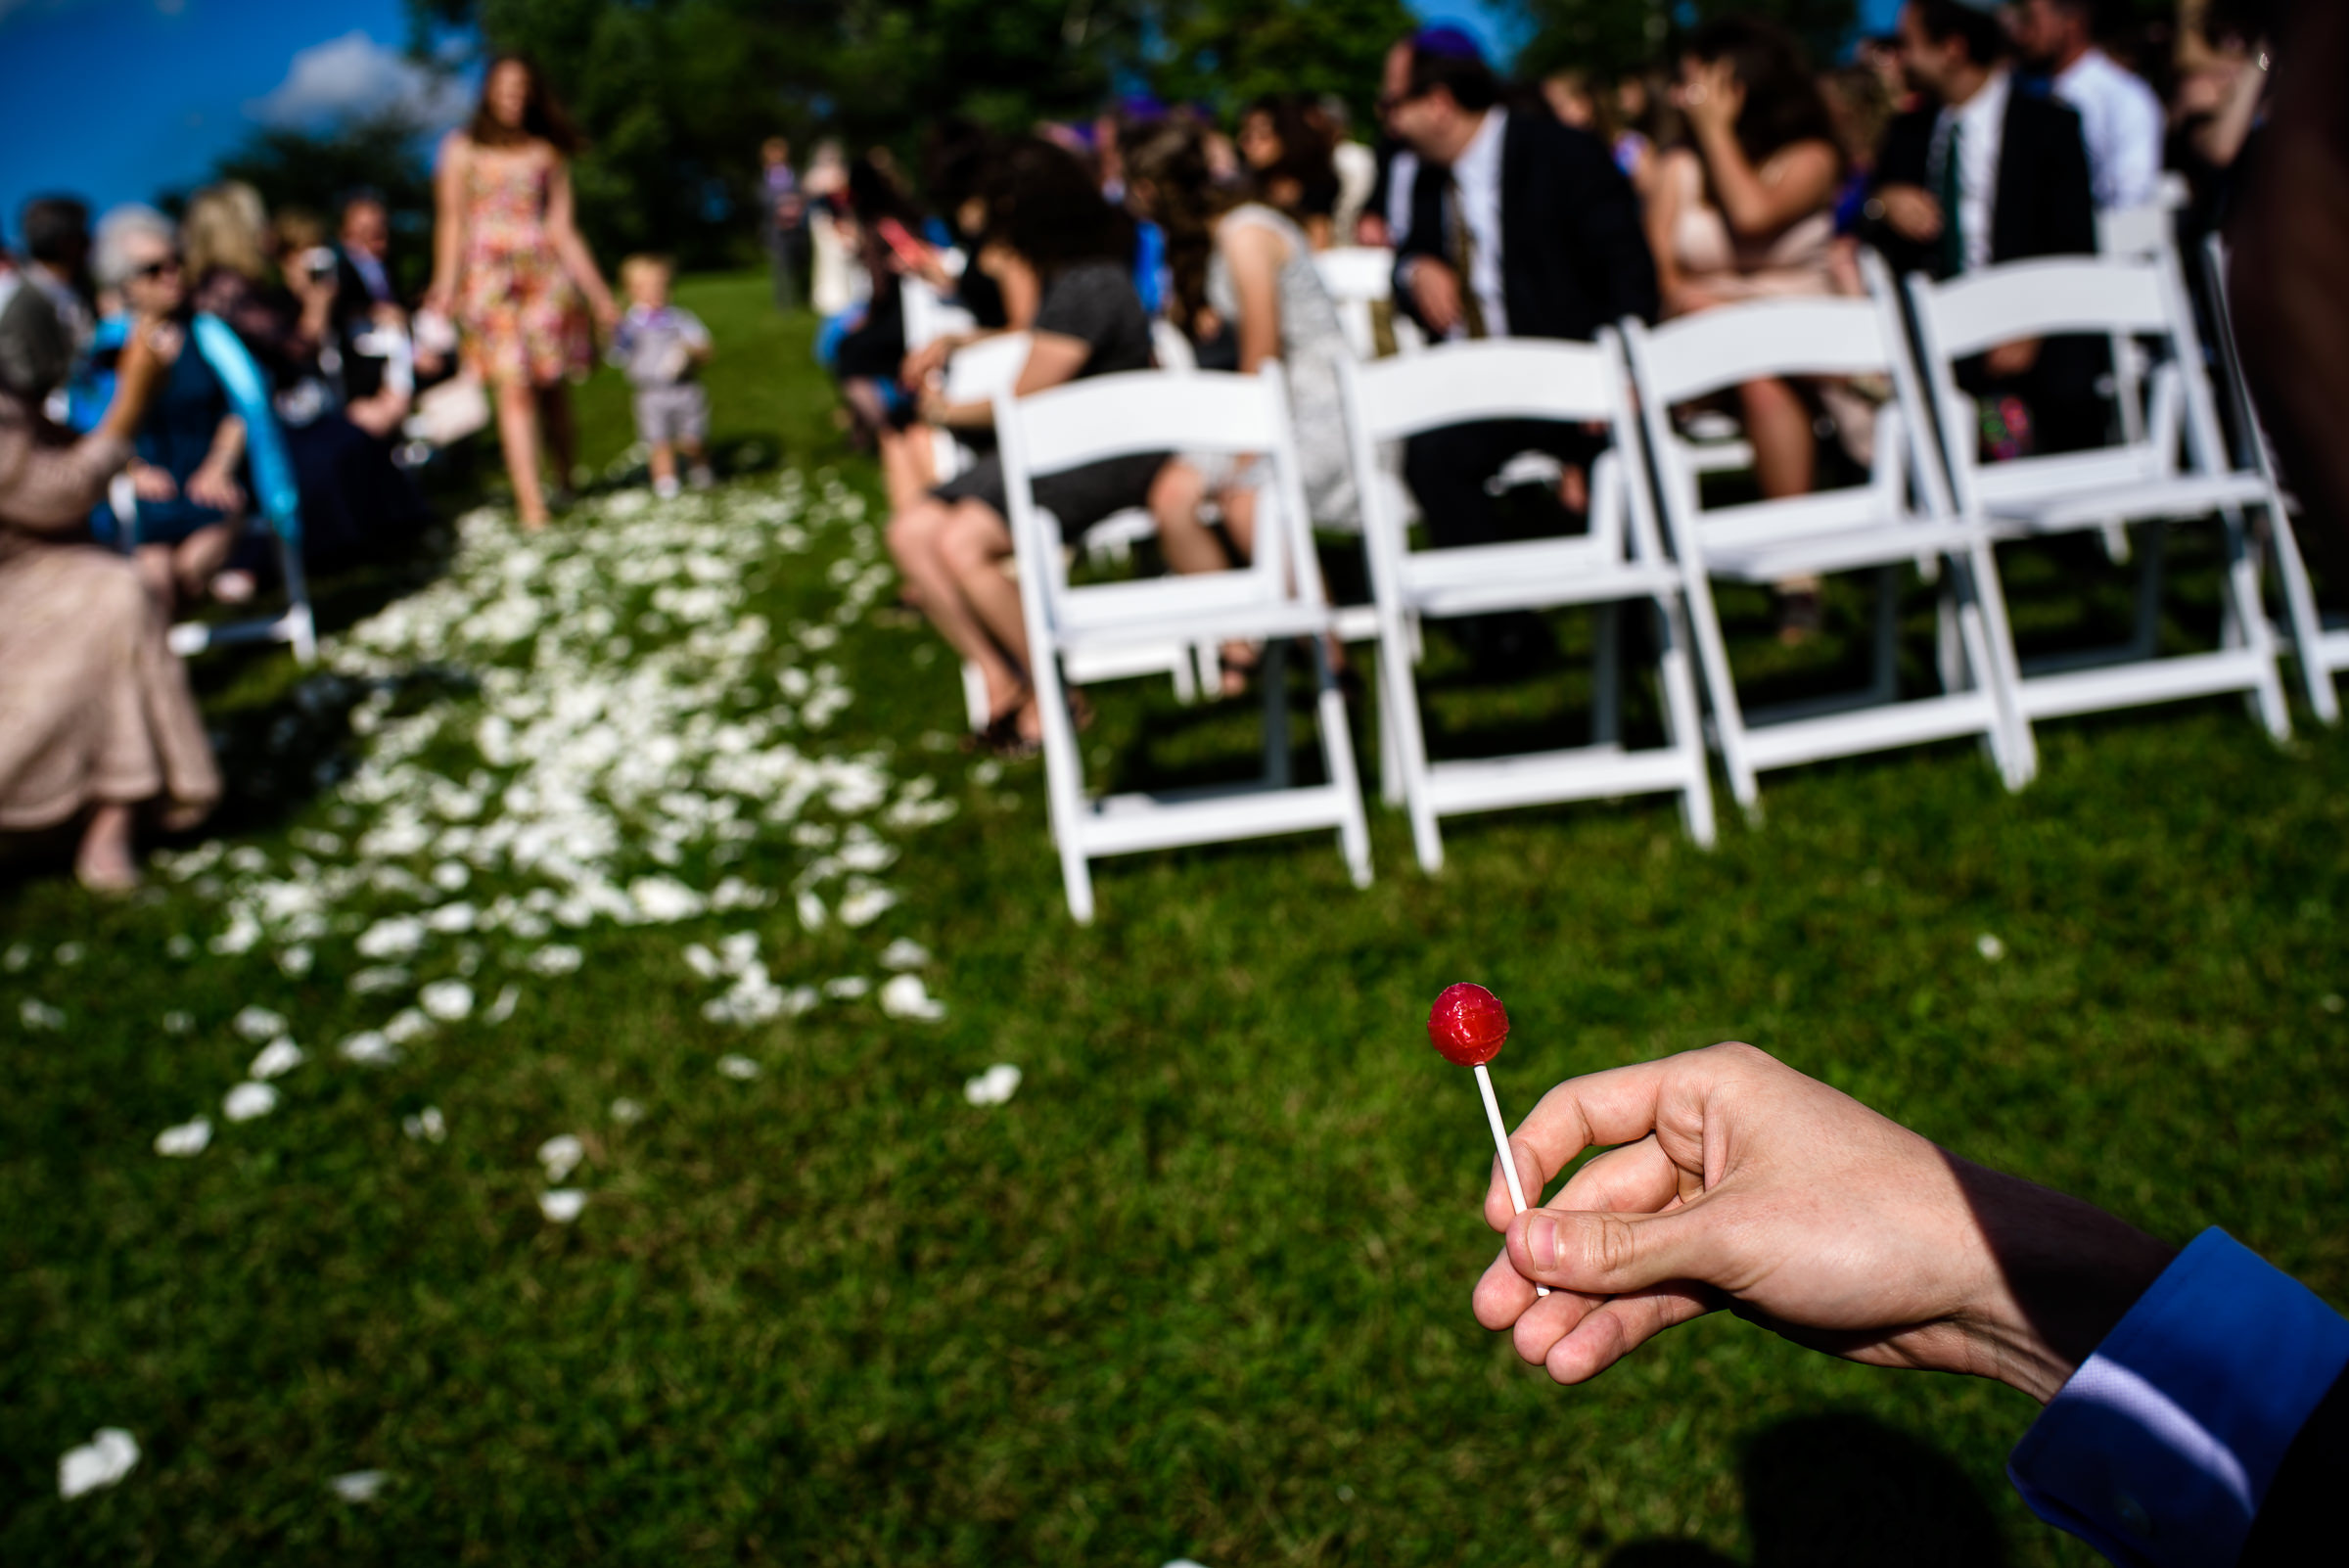 eating a lollipop while processional comes their way- photo by Hannah Photography